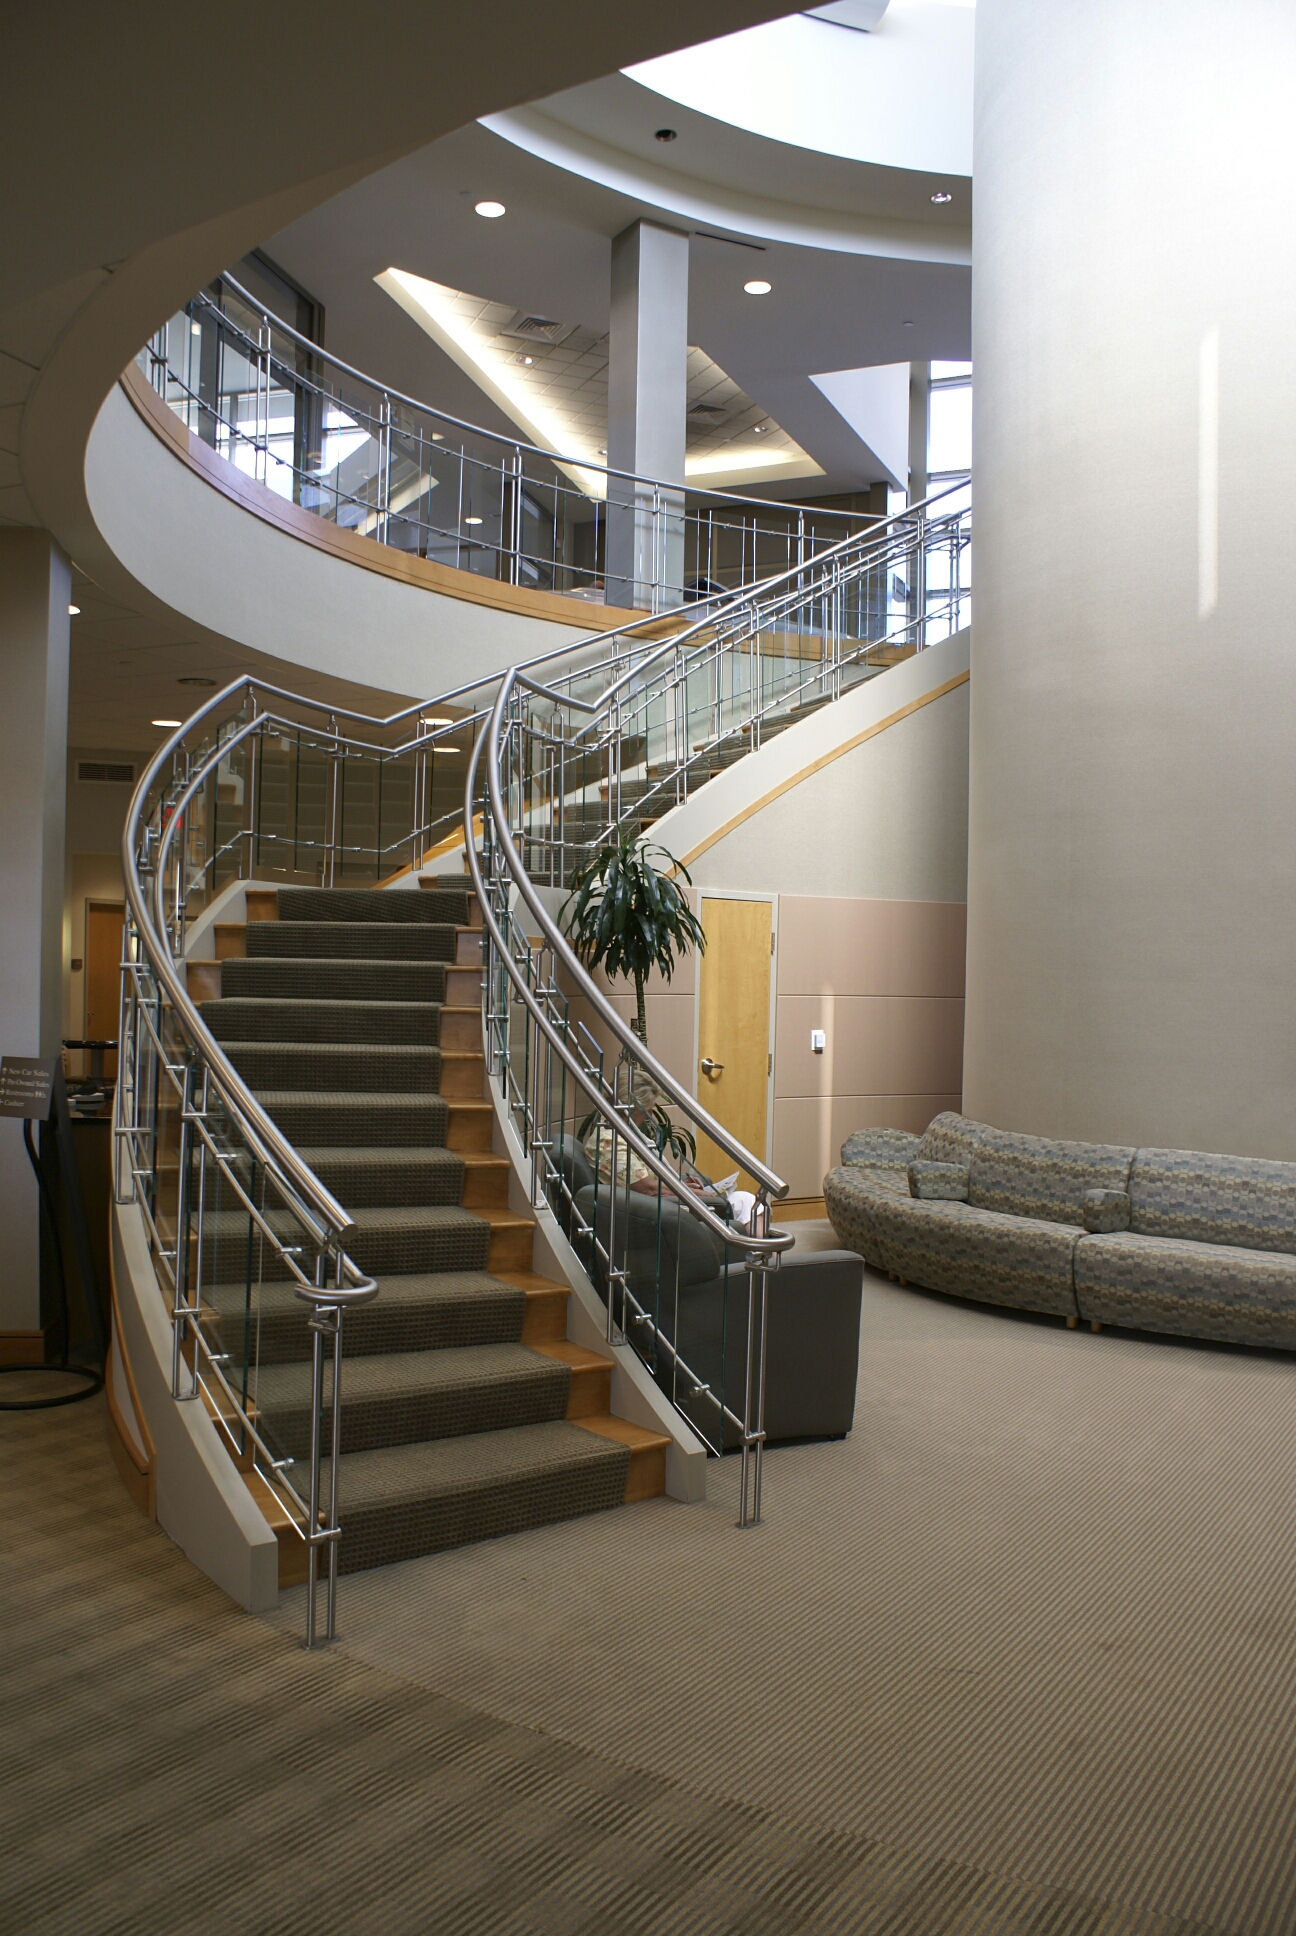 Luxury Ways for Selecting Railings